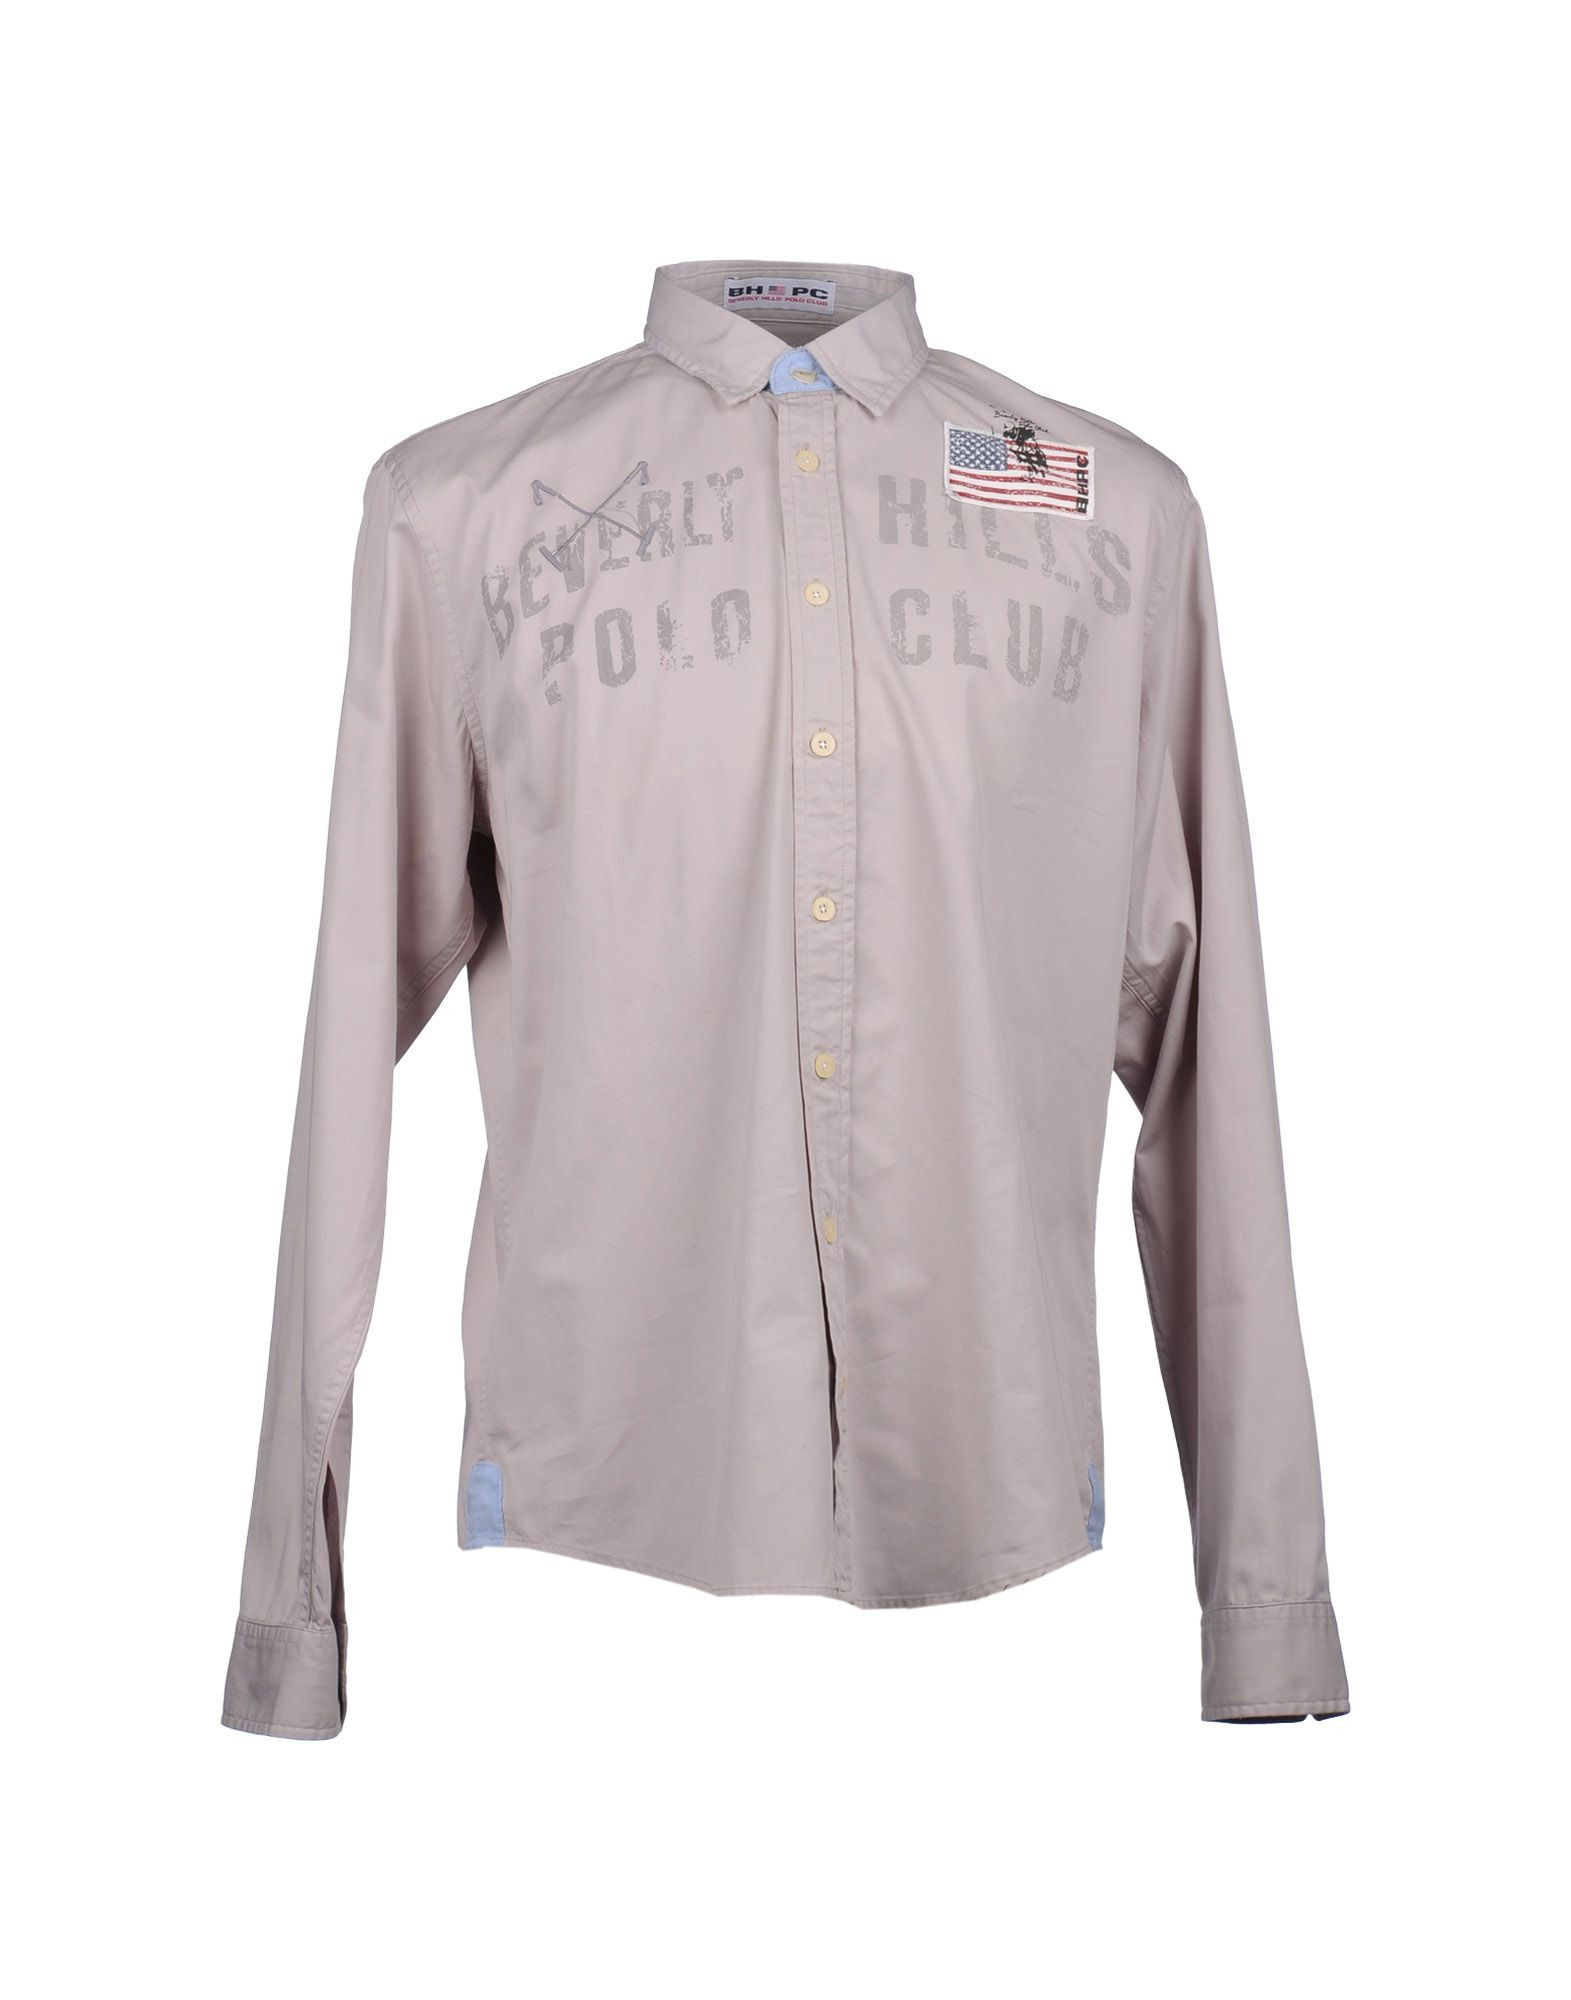 Beverly Hills Polo Club Long Sleeve Shirt In Gray For Men